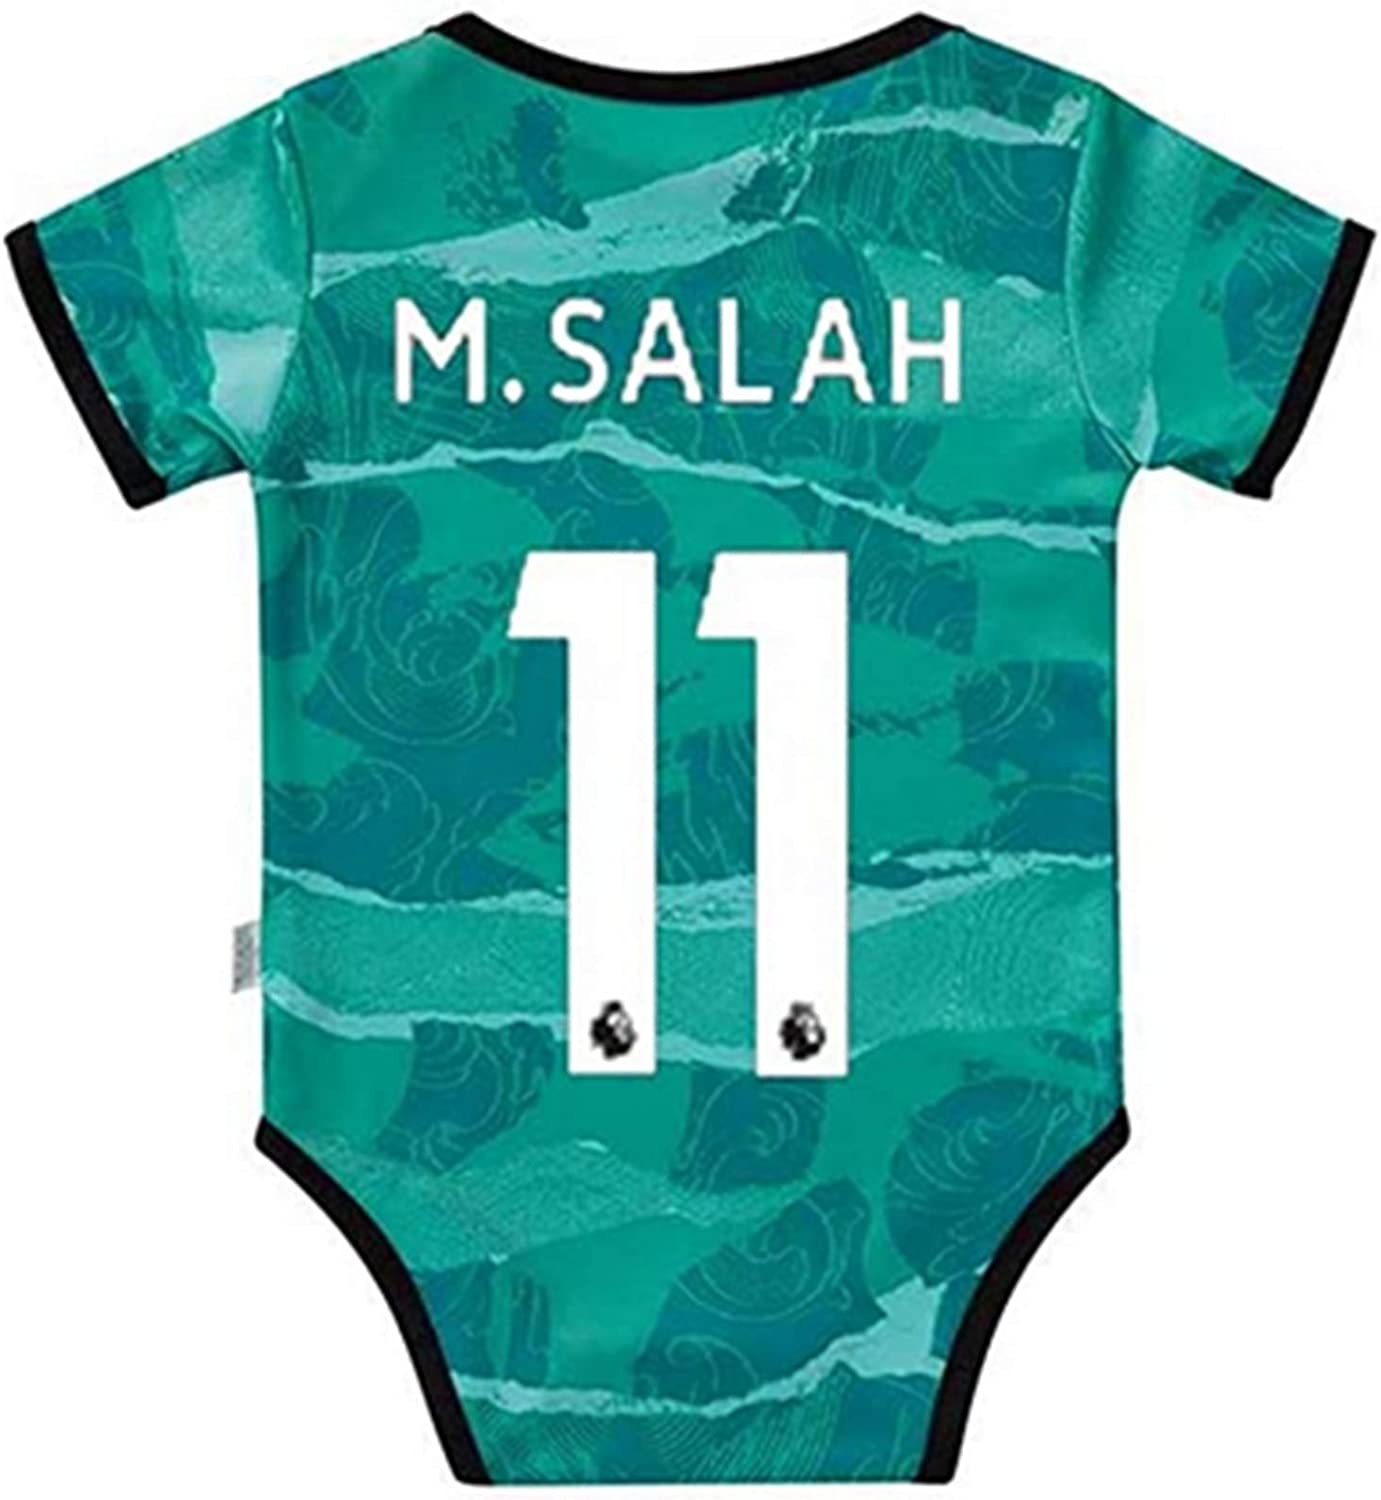 Football Fans Club Home and Away Soccer Baby Bodysuit Comfort Jumpsuit for 0-18 Months Infant and Toddler New Season Jersey